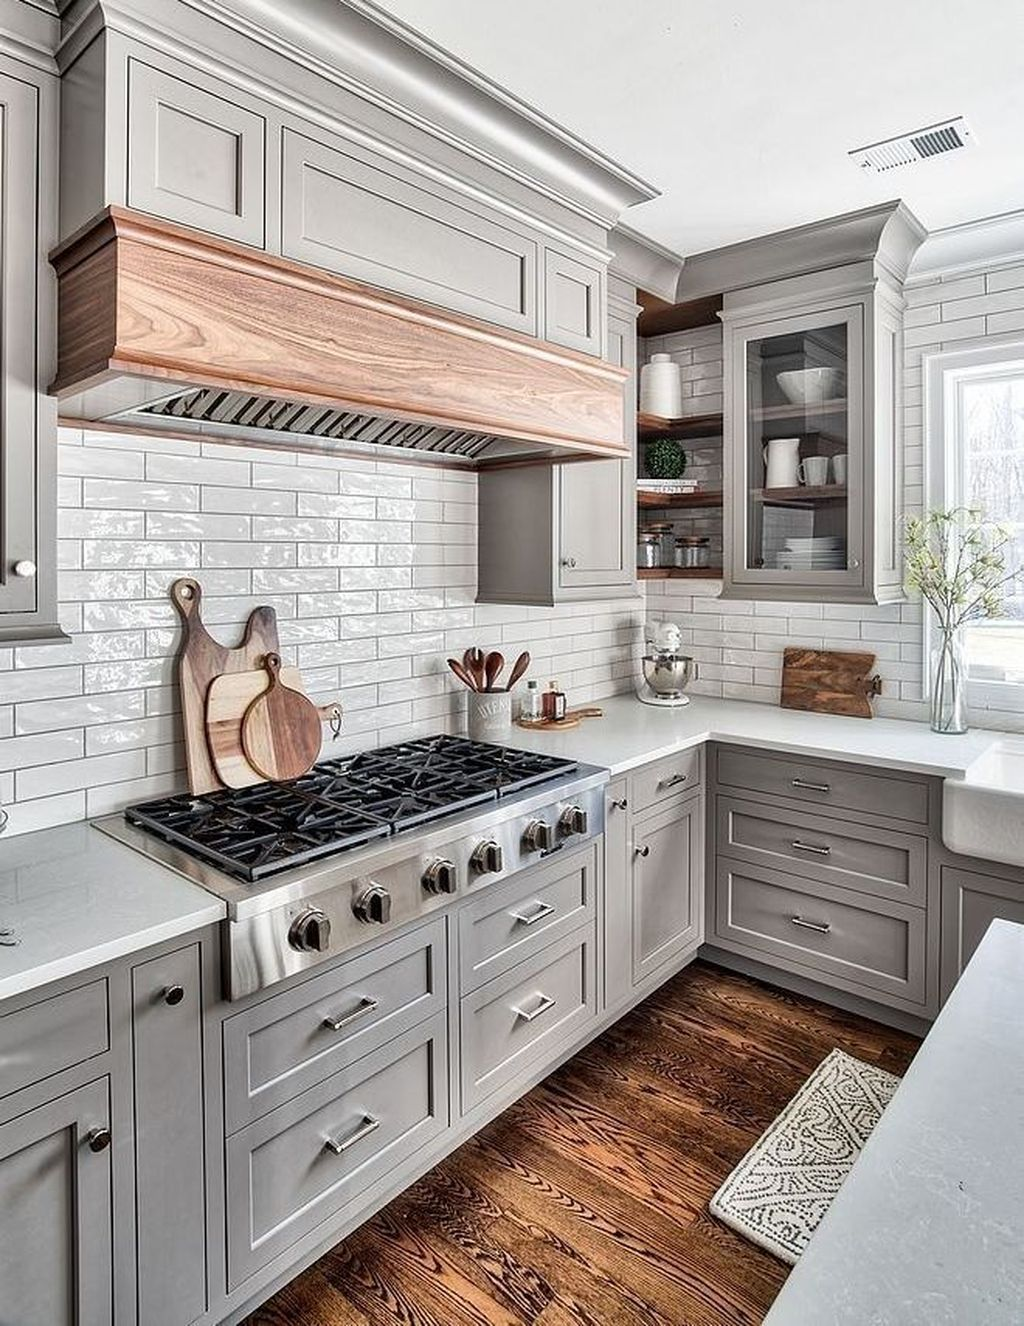 48 cute kitchen design ideas in 2020 with images grey kitchen designs kitchen cabinet on kitchen ideas modern id=64197